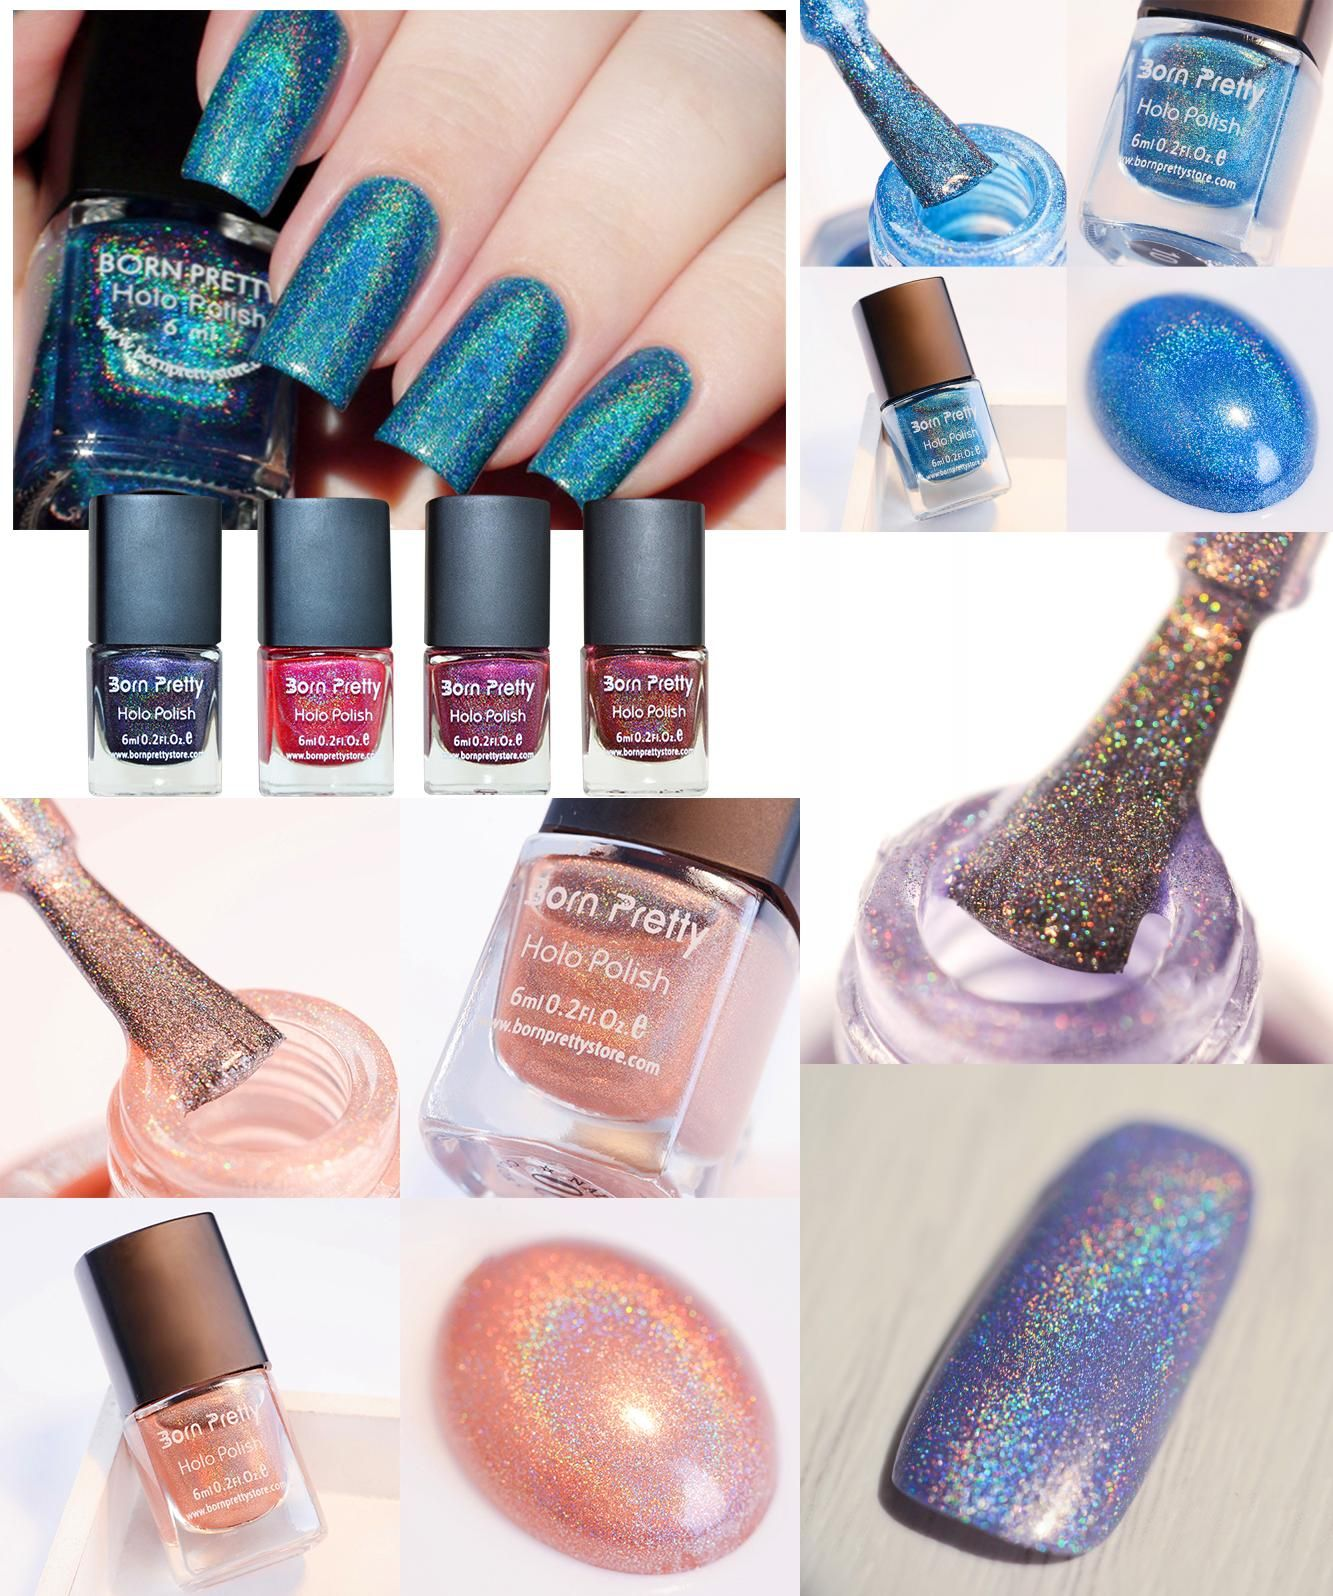 Visit to Buy] BORN PRETTY 1 Bottle Holographic Holo Glitter Nail ...